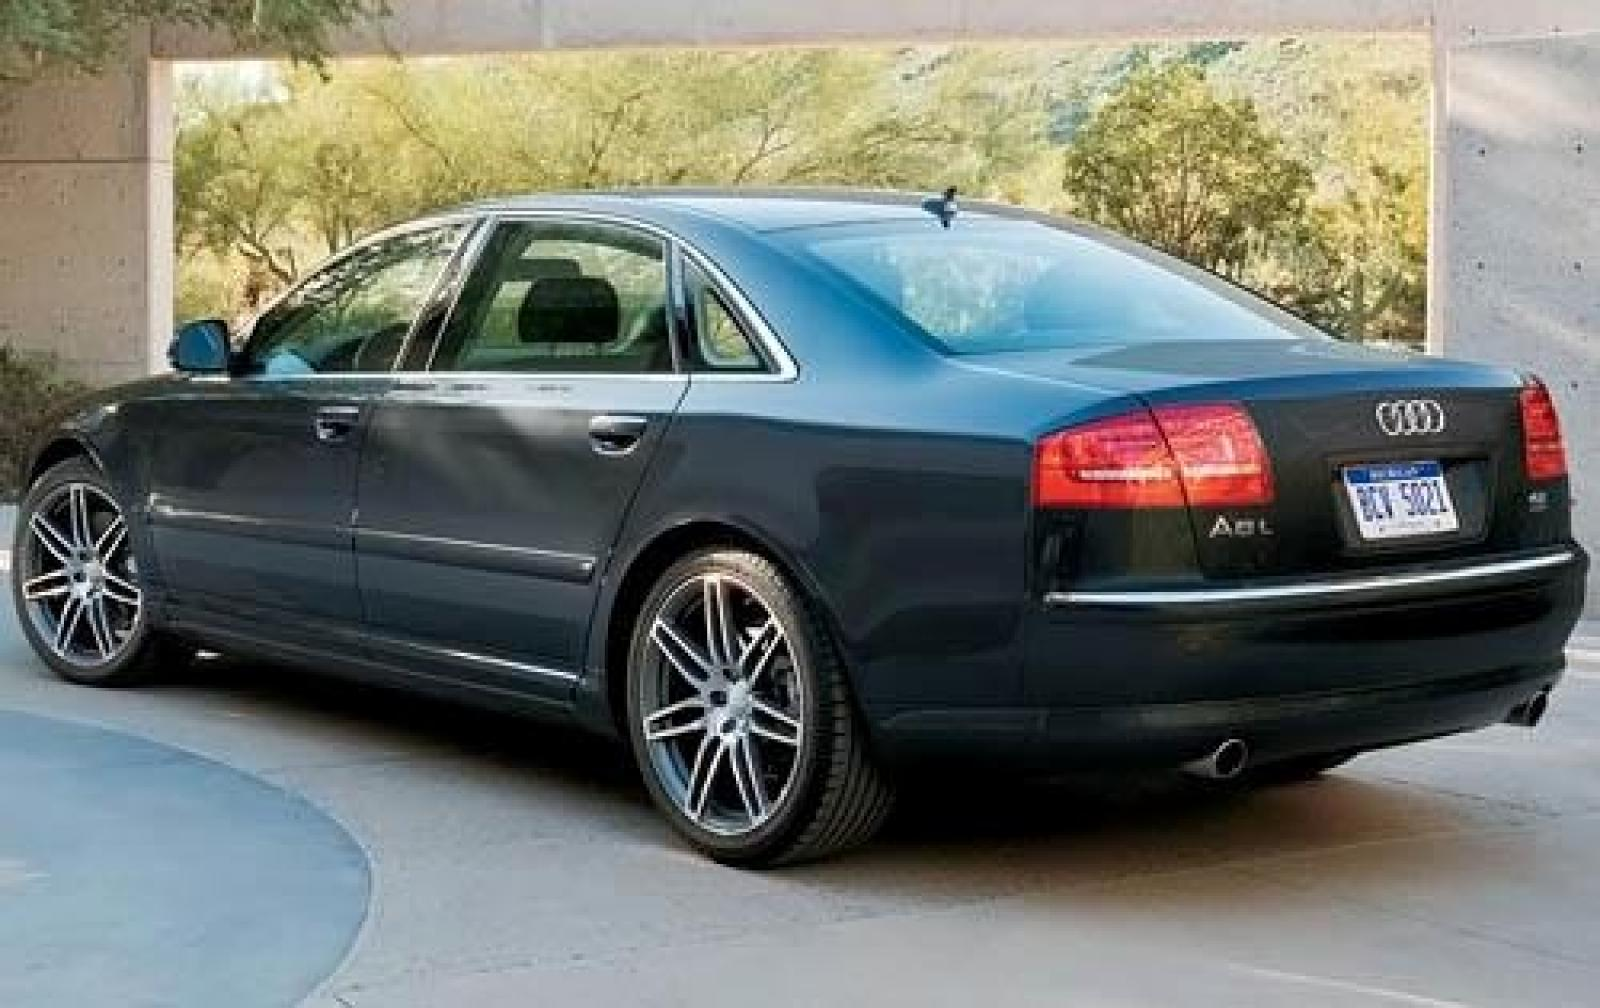 Audi A8 For Sale - Carsforsale.com